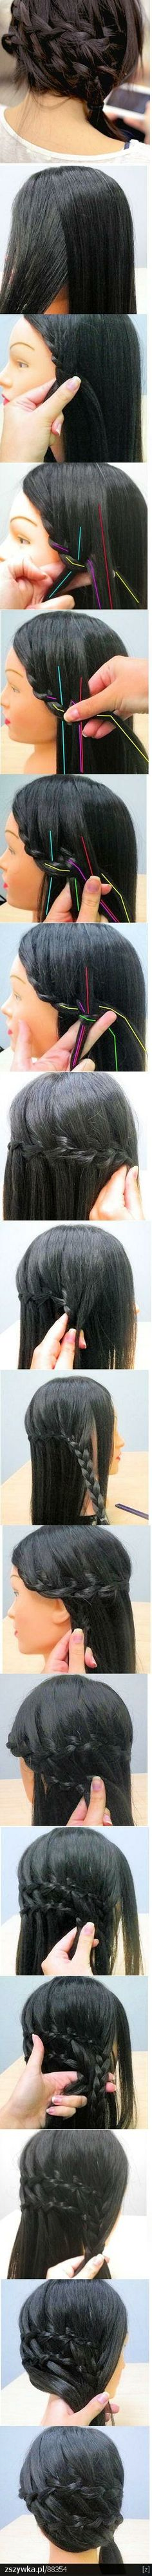 simple yet elegant hairstyle